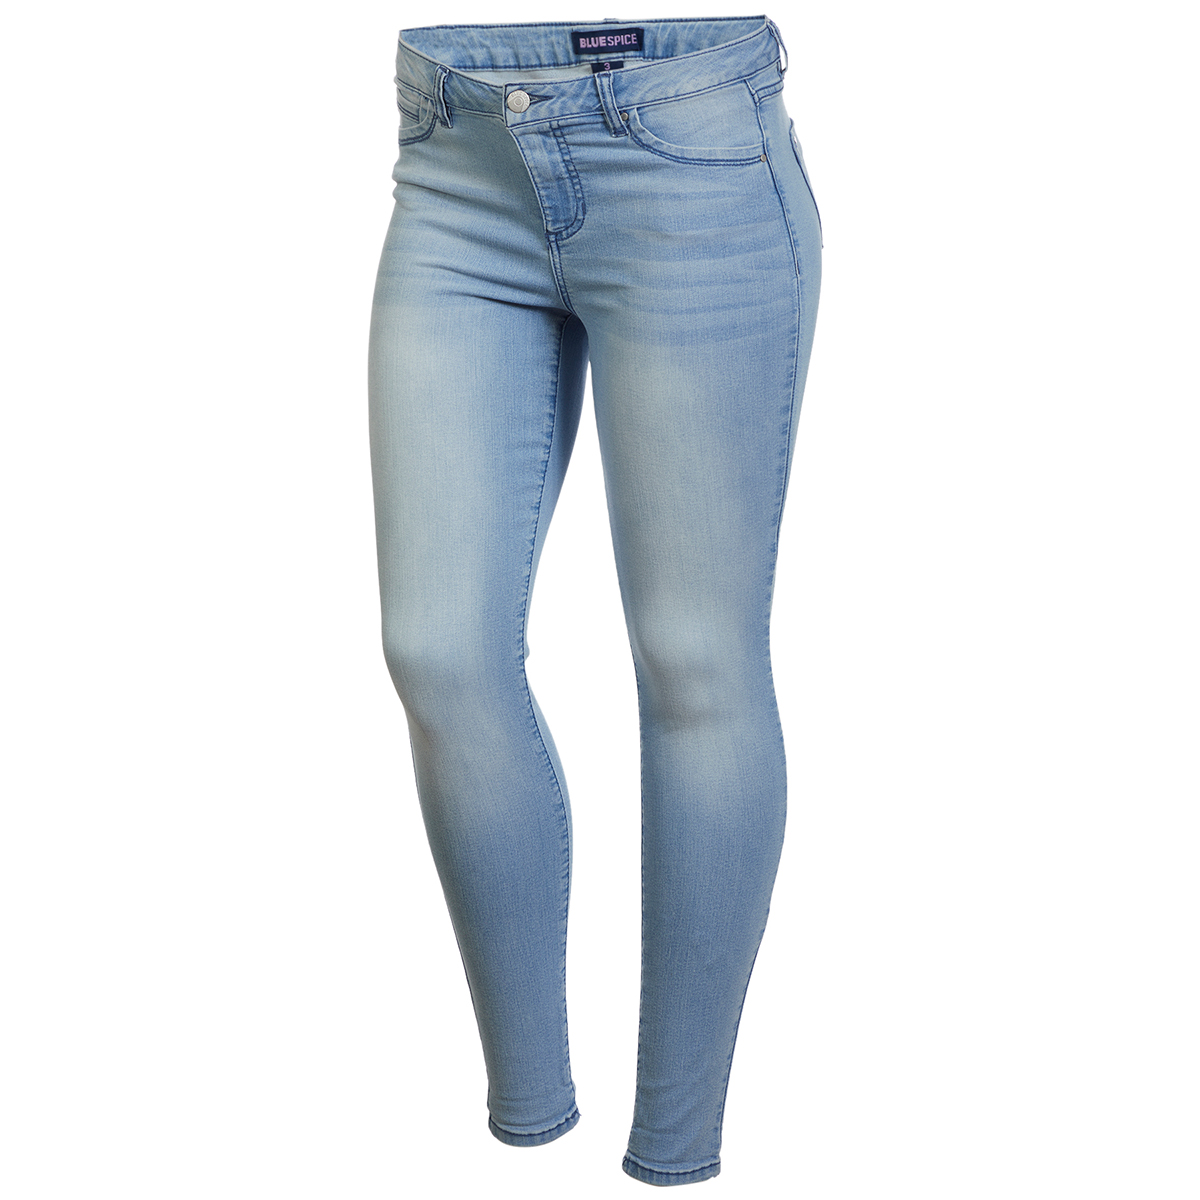 Blue Spice Juniors' High Waist Roll Cuff Jeans